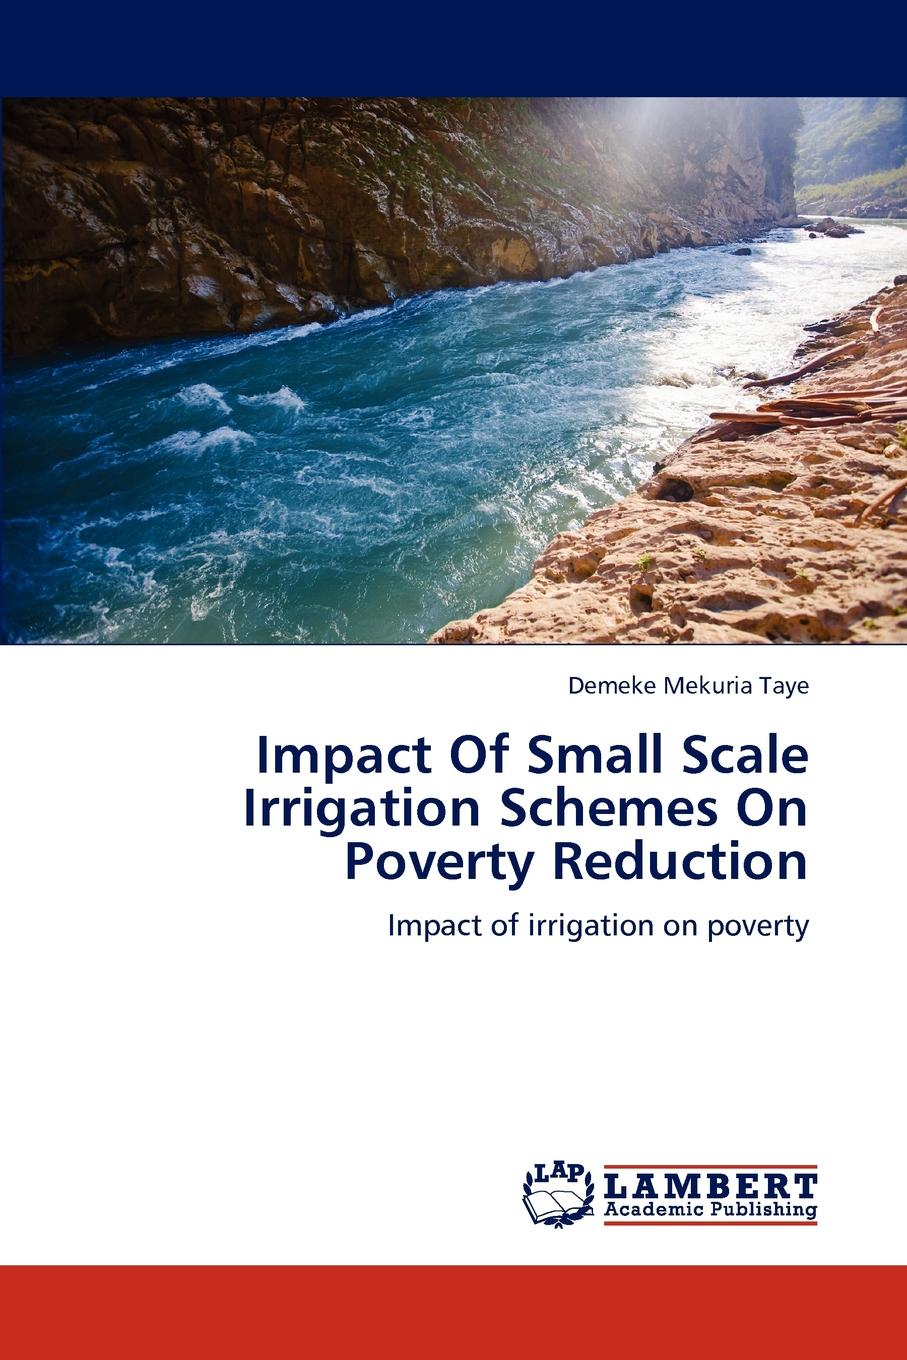 Demeke Mekuria Taye Impact of Small Scale Irrigation Schemes on Poverty Reduction